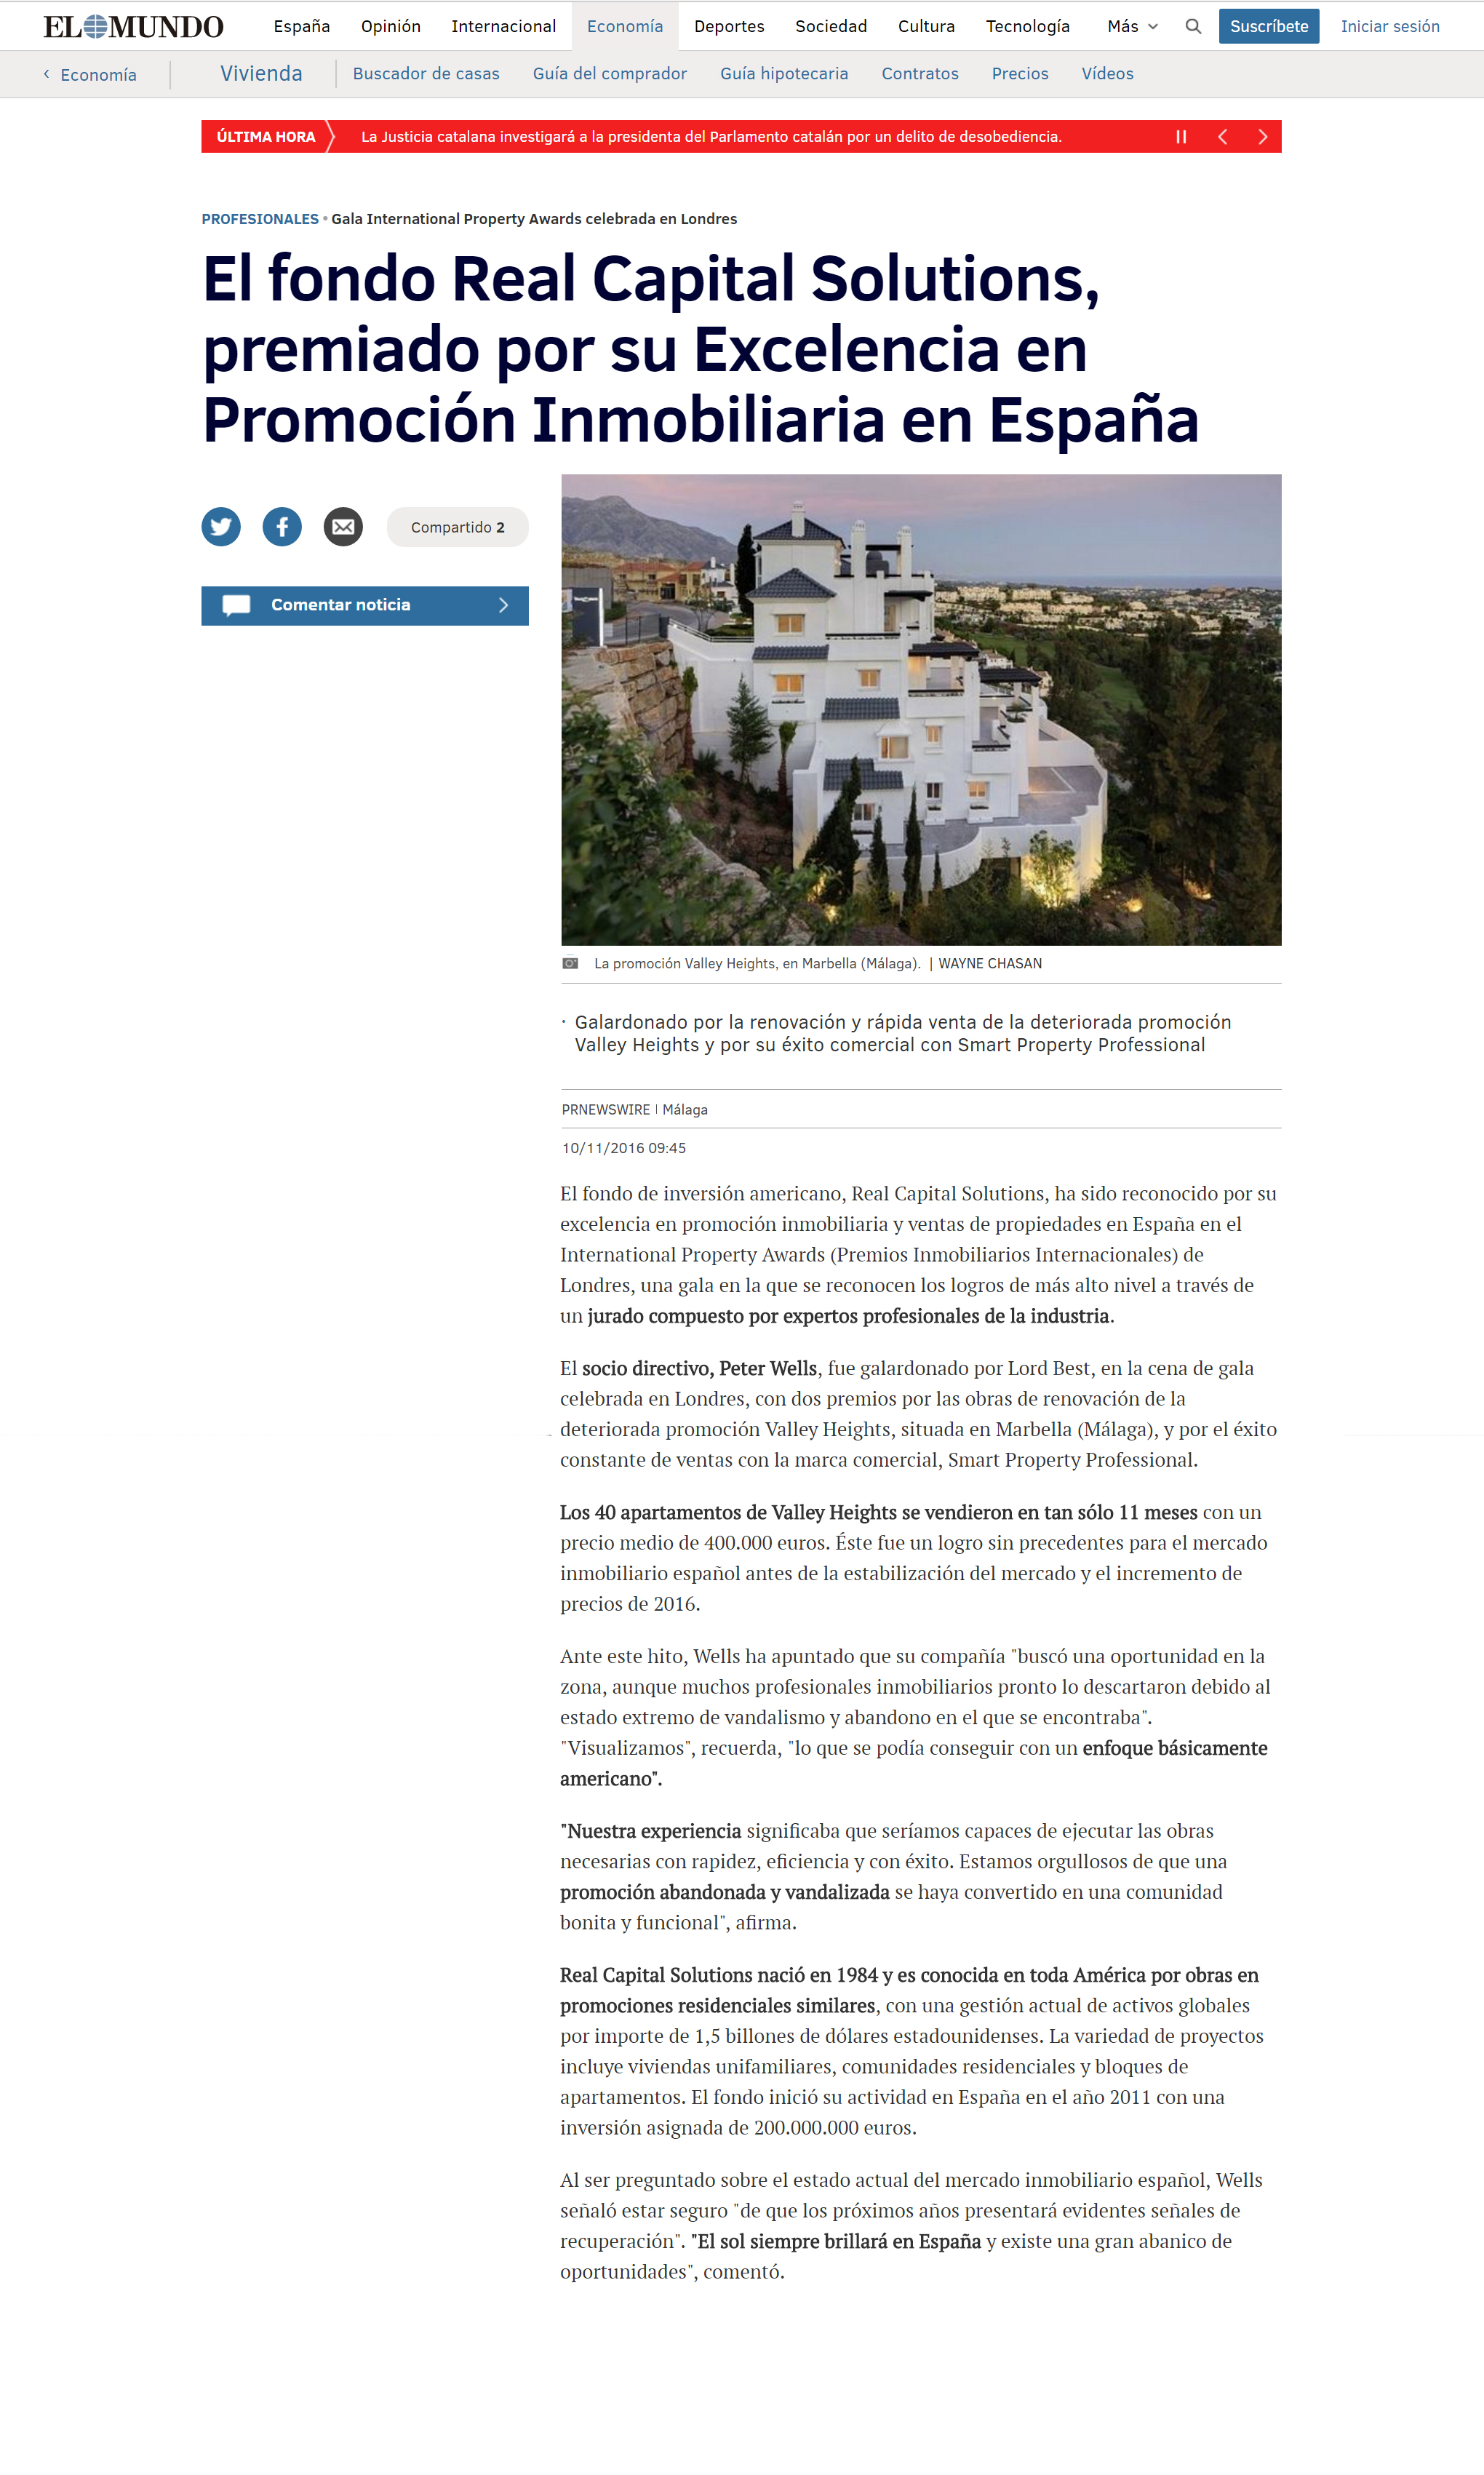 Real Capital Solutions featured in elmundo.es